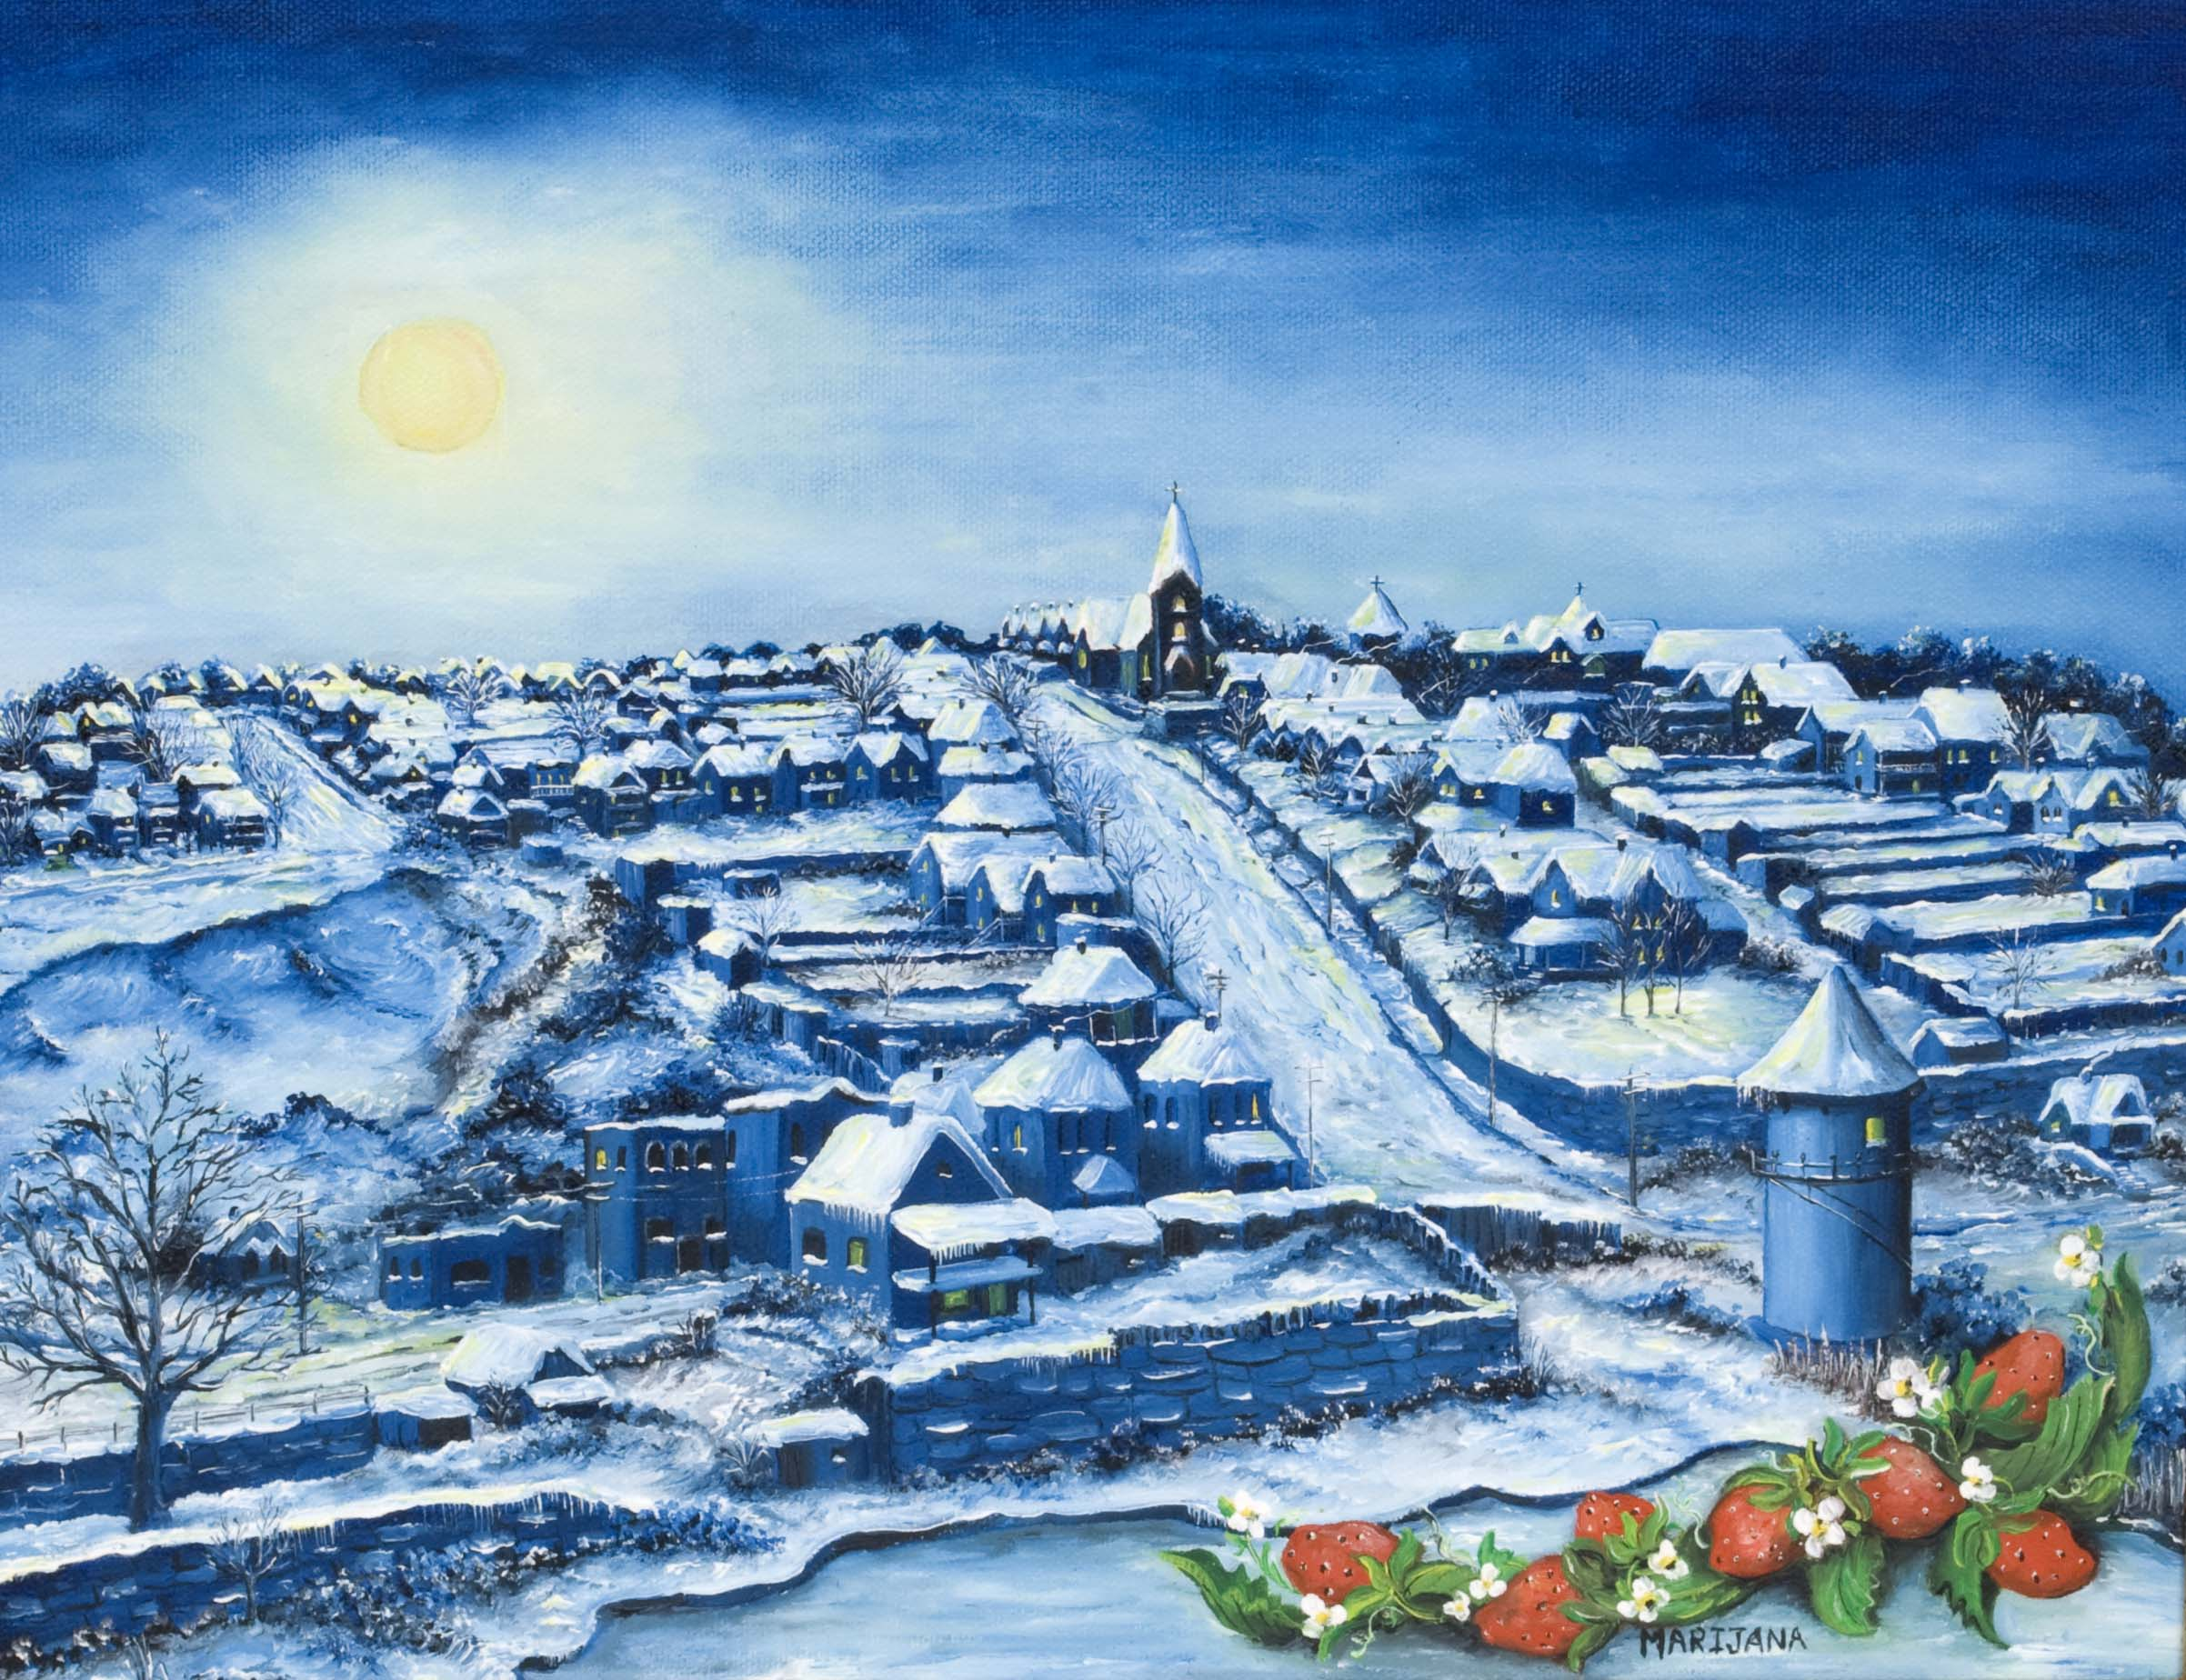 Painting titled Winter Evening with snow covering the Strawberry Hill neighborhood.